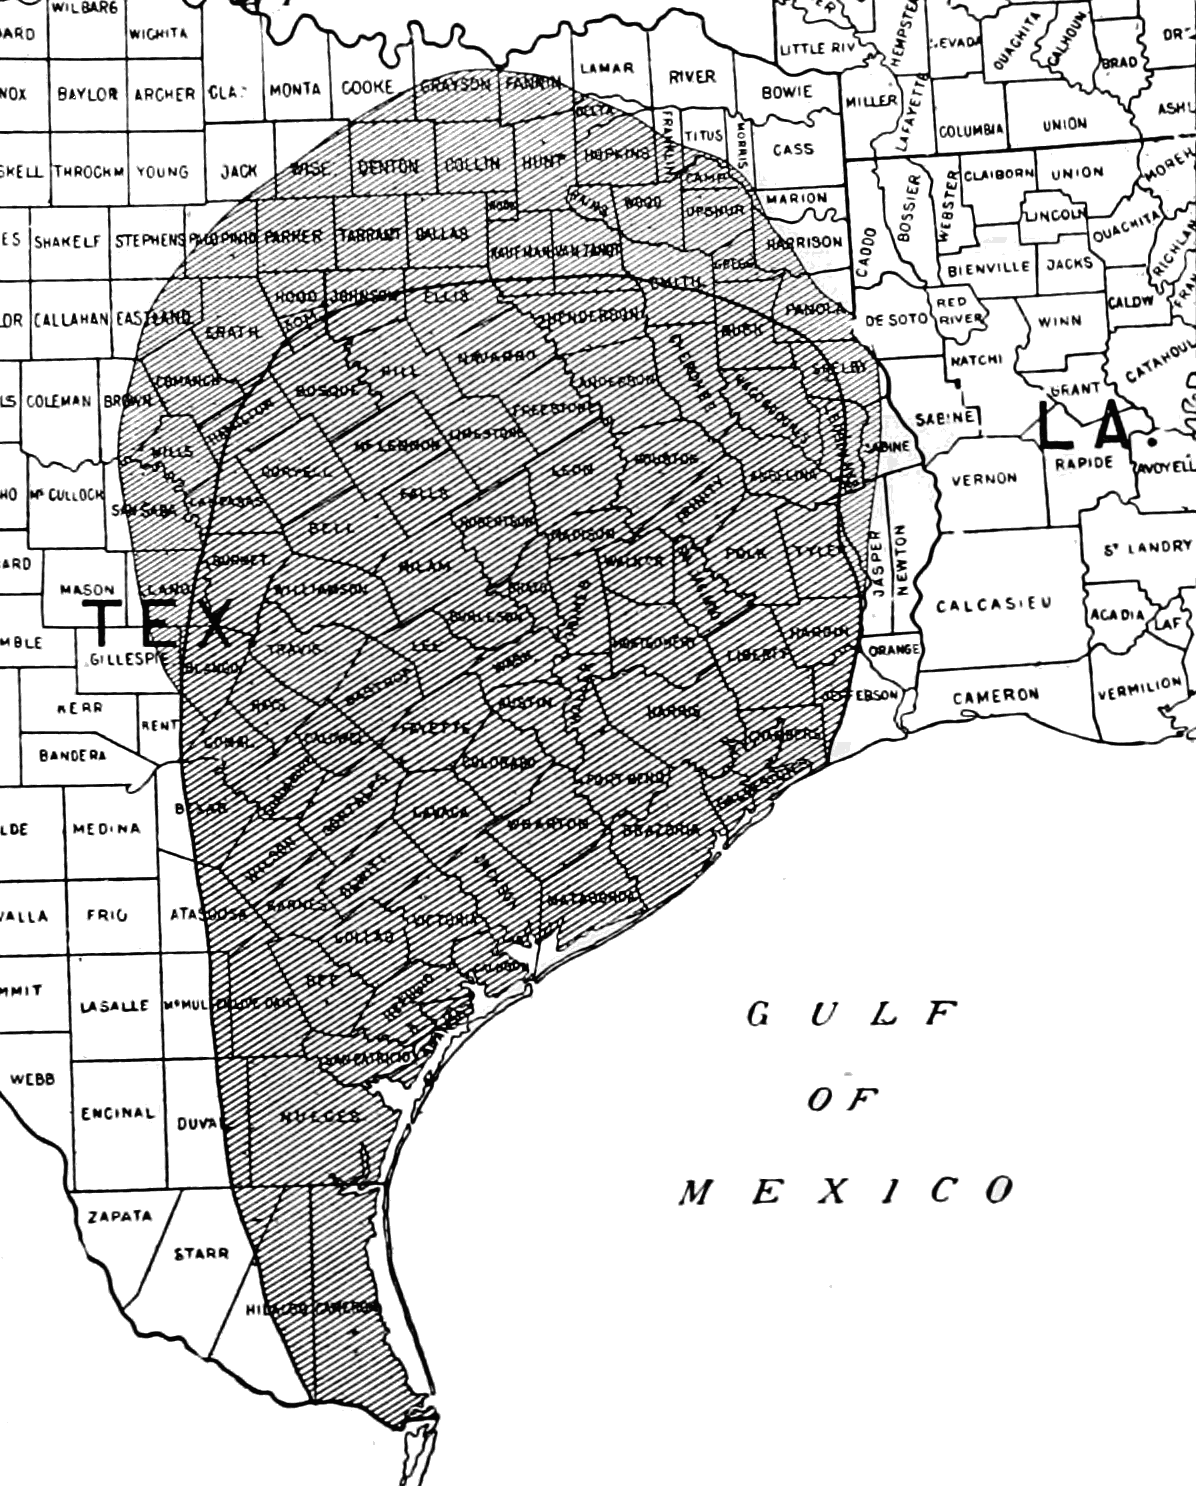 PSM V65 D193 Distribution of the cotton boll weevil in the usa in 1903.png